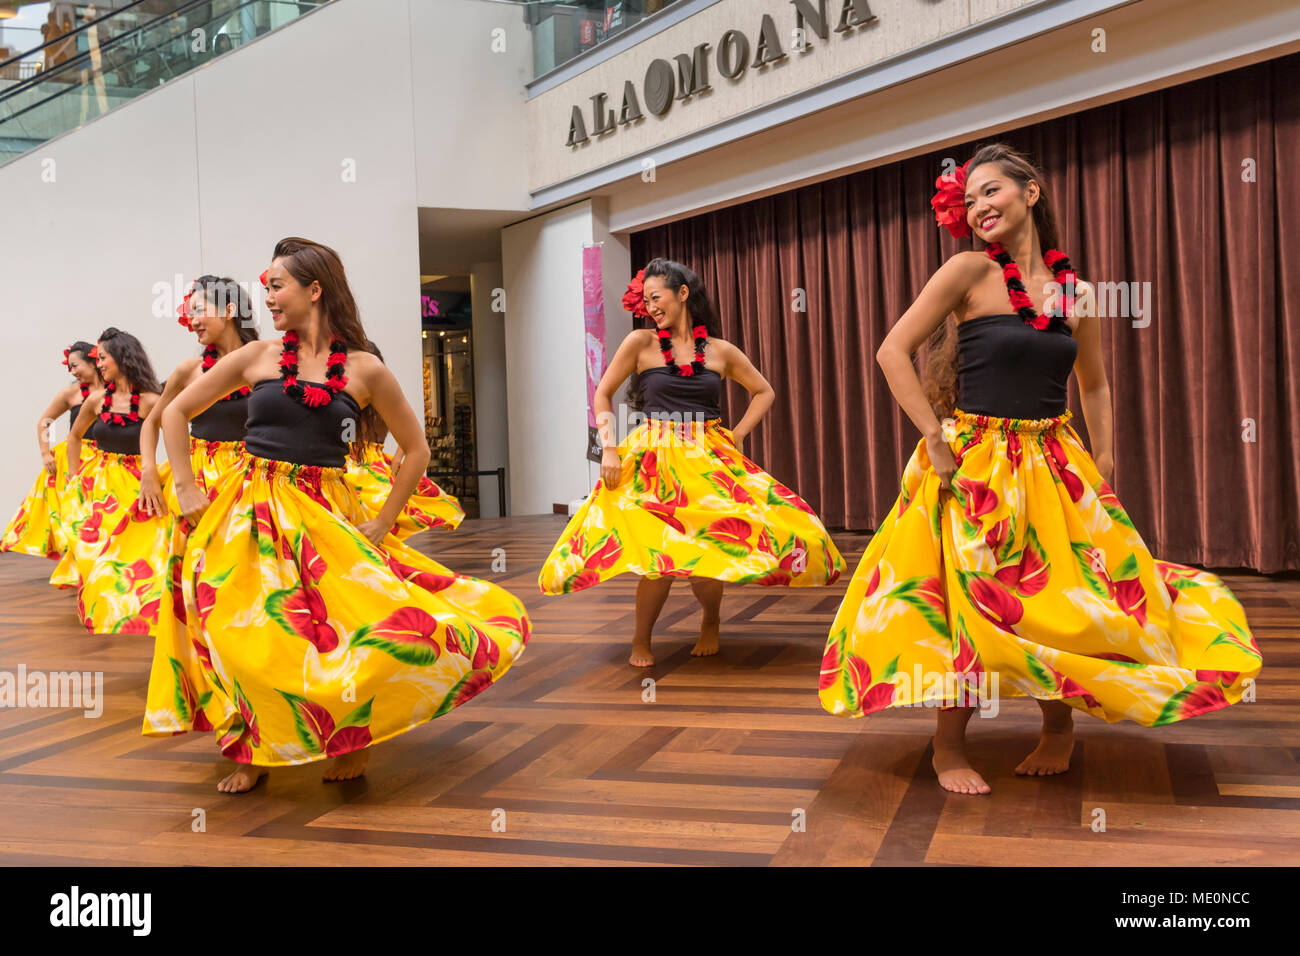 Hula dancers entertaining shoppers at the Ala Mona Shopping Center's stage in Waikiki; Honolulu, Oahu, Hawaii, United States of America - Stock Image